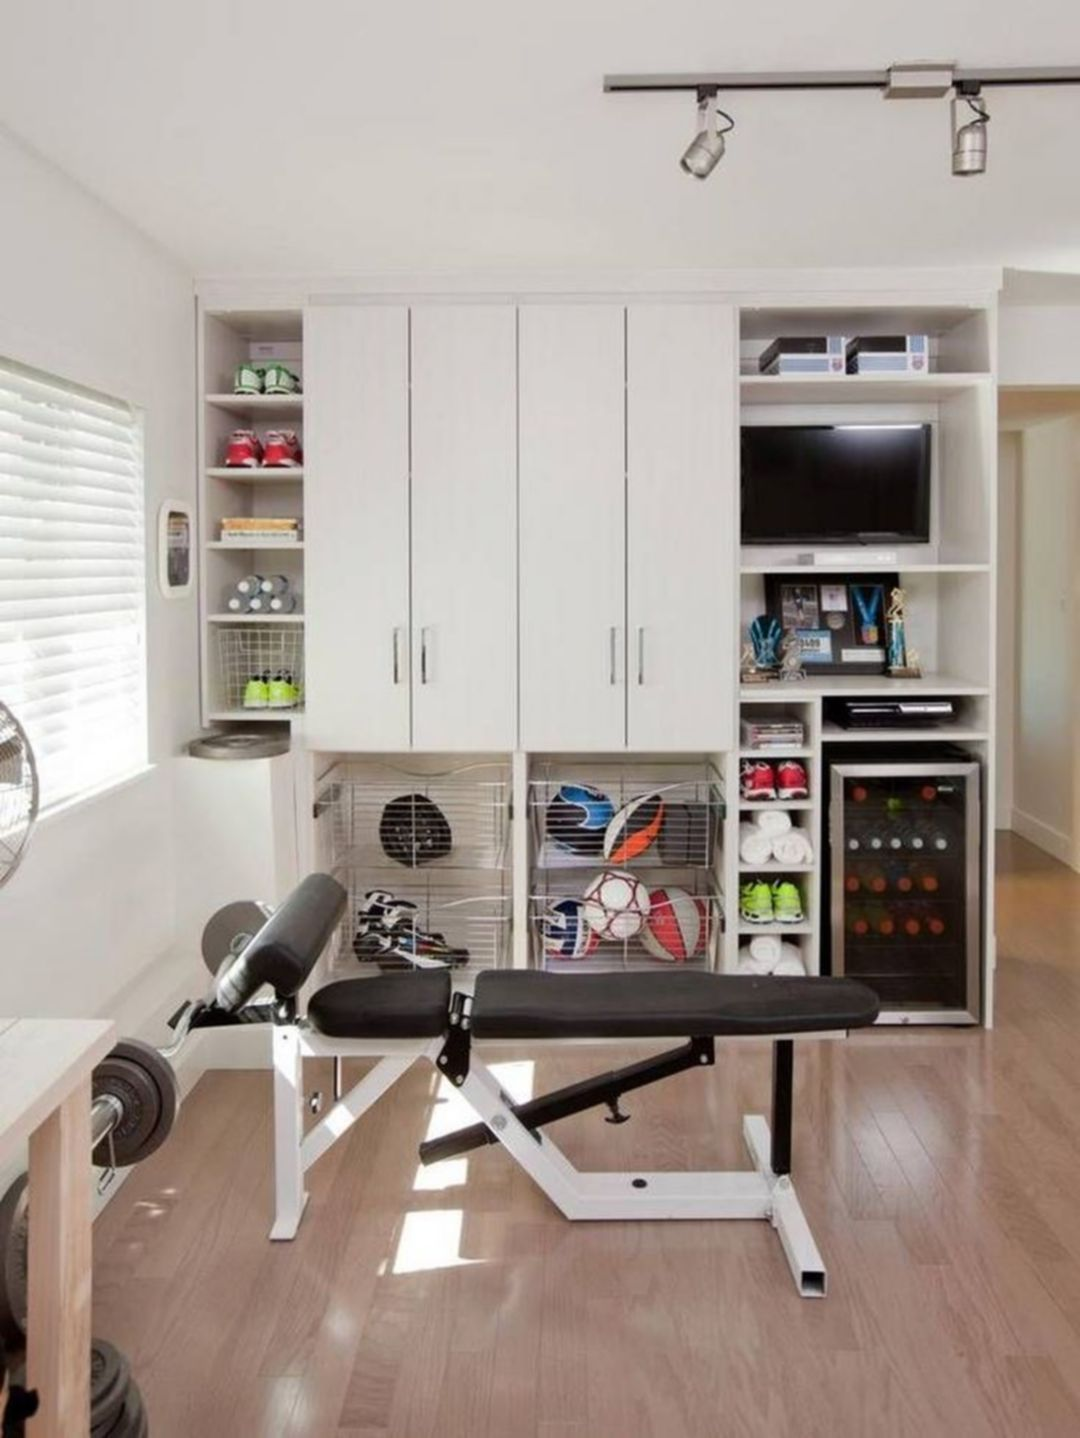 30 Simple And Gorgeous Small Spaces Exercise Room Ideas images